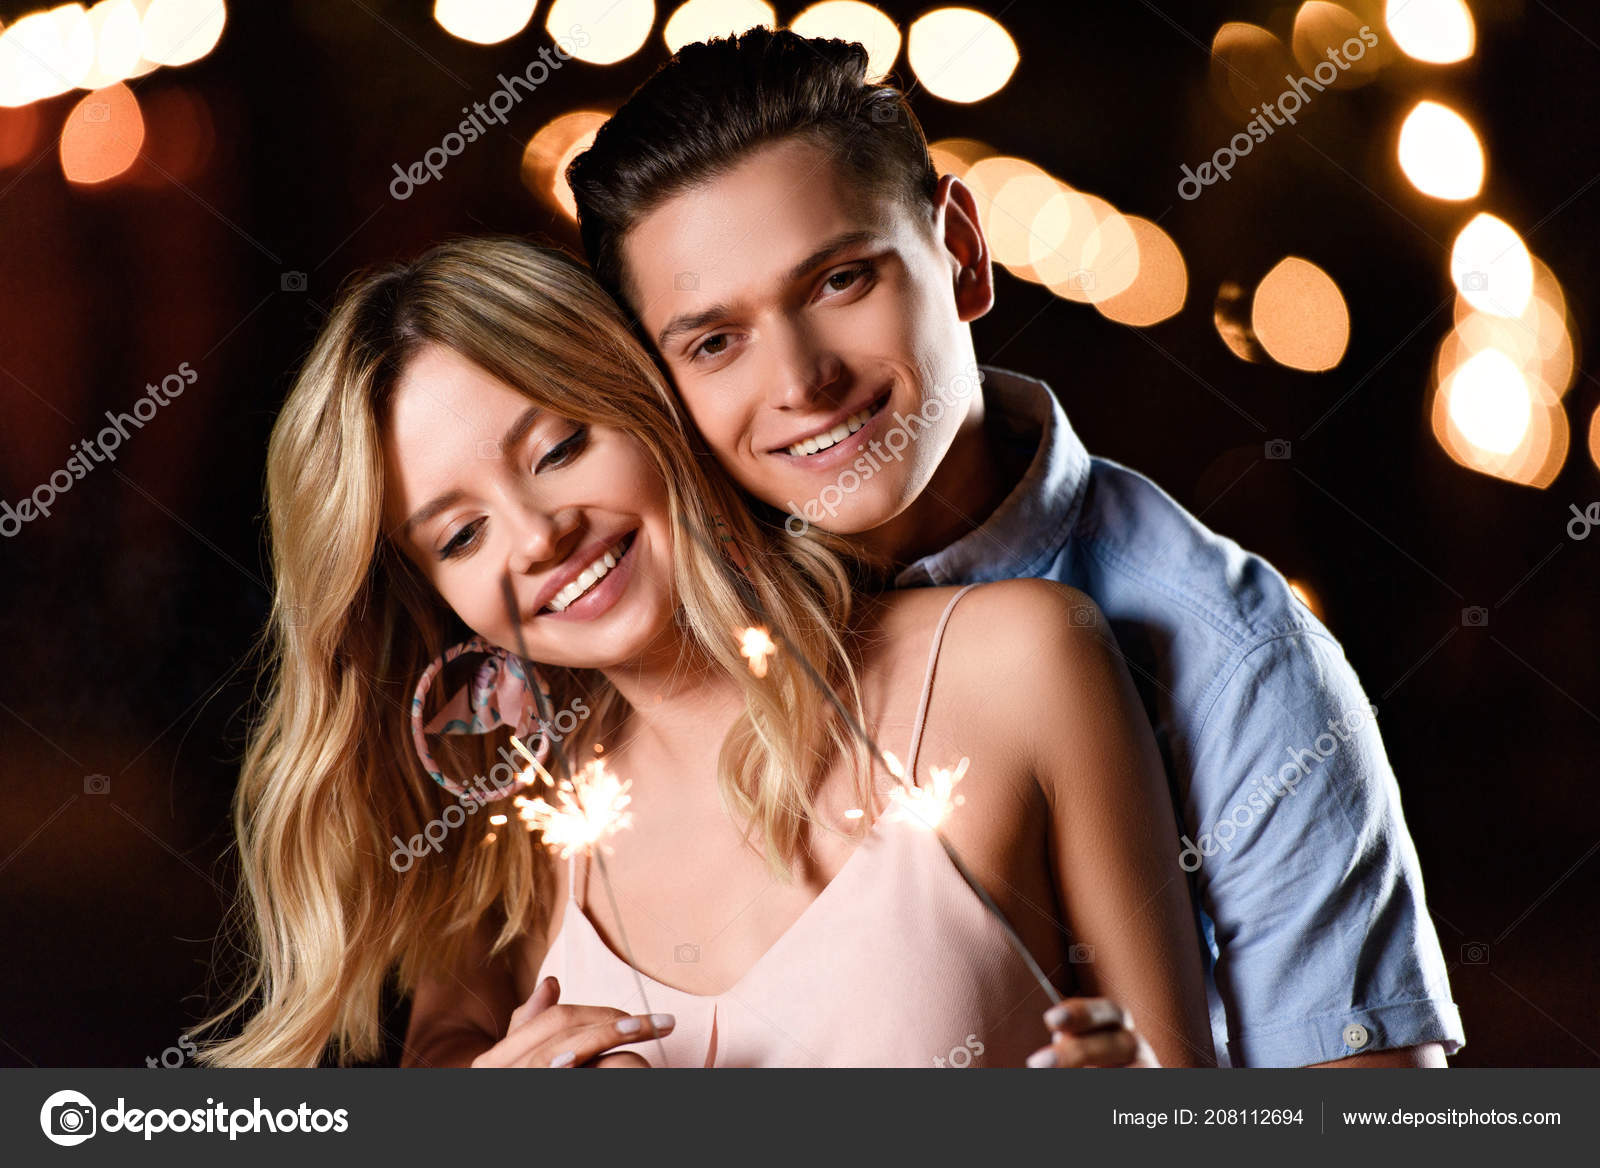 Tallahassee dating service